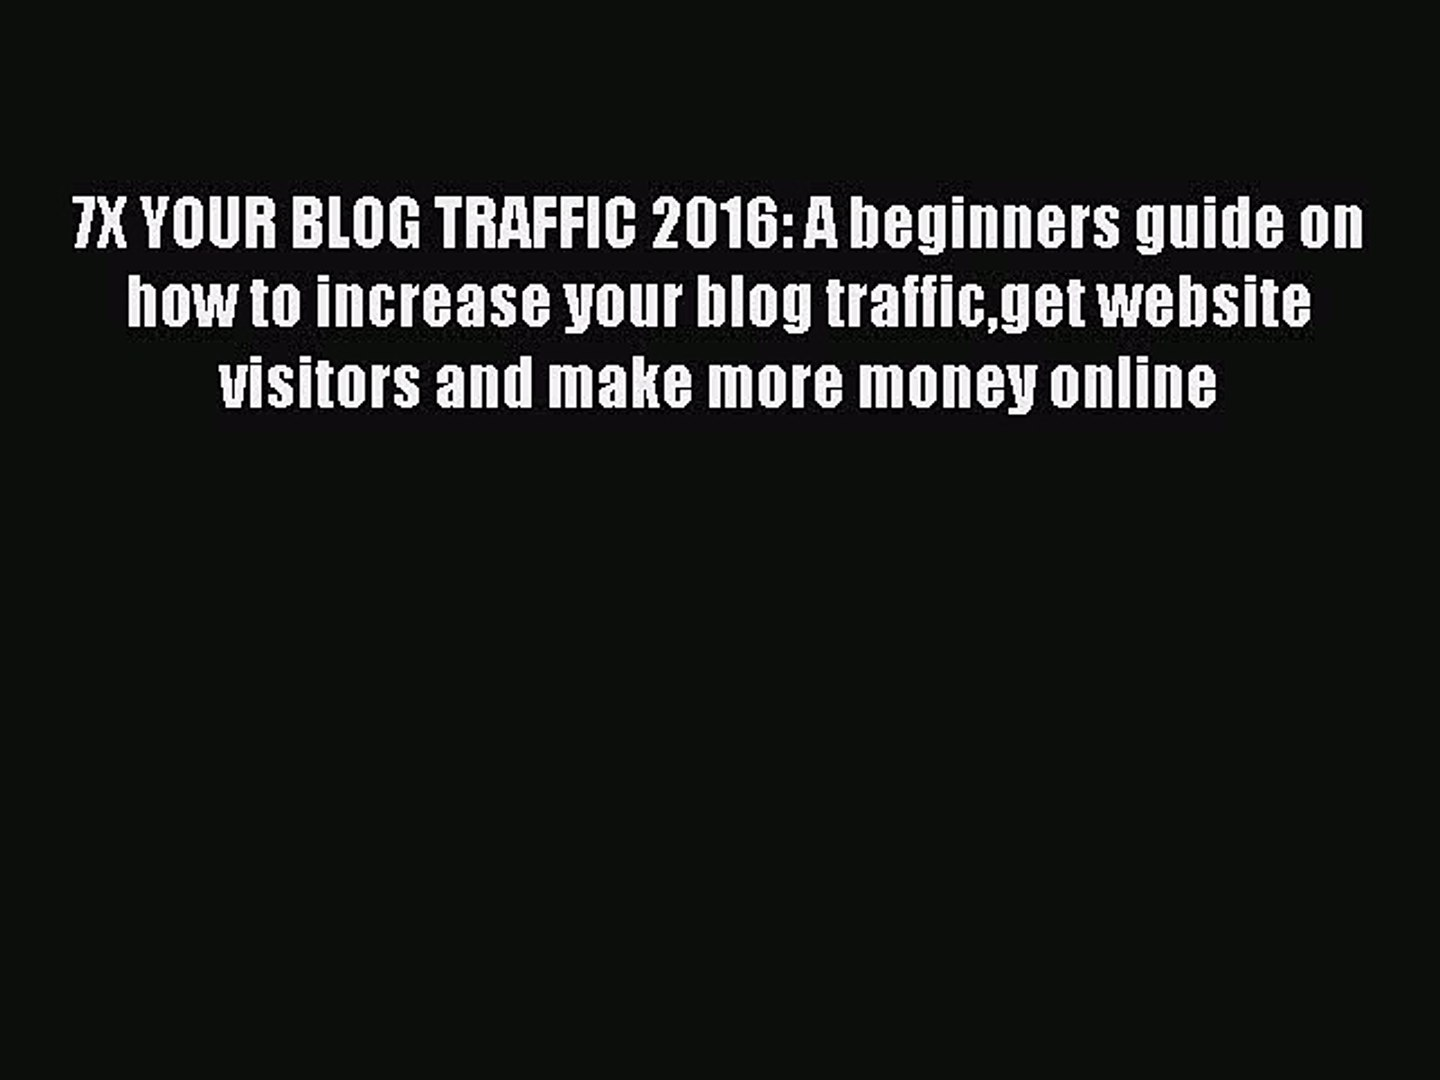 Read 7X YOUR BLOG TRAFFIC 2016: A beginners guide on how to increase your blog trafficget website